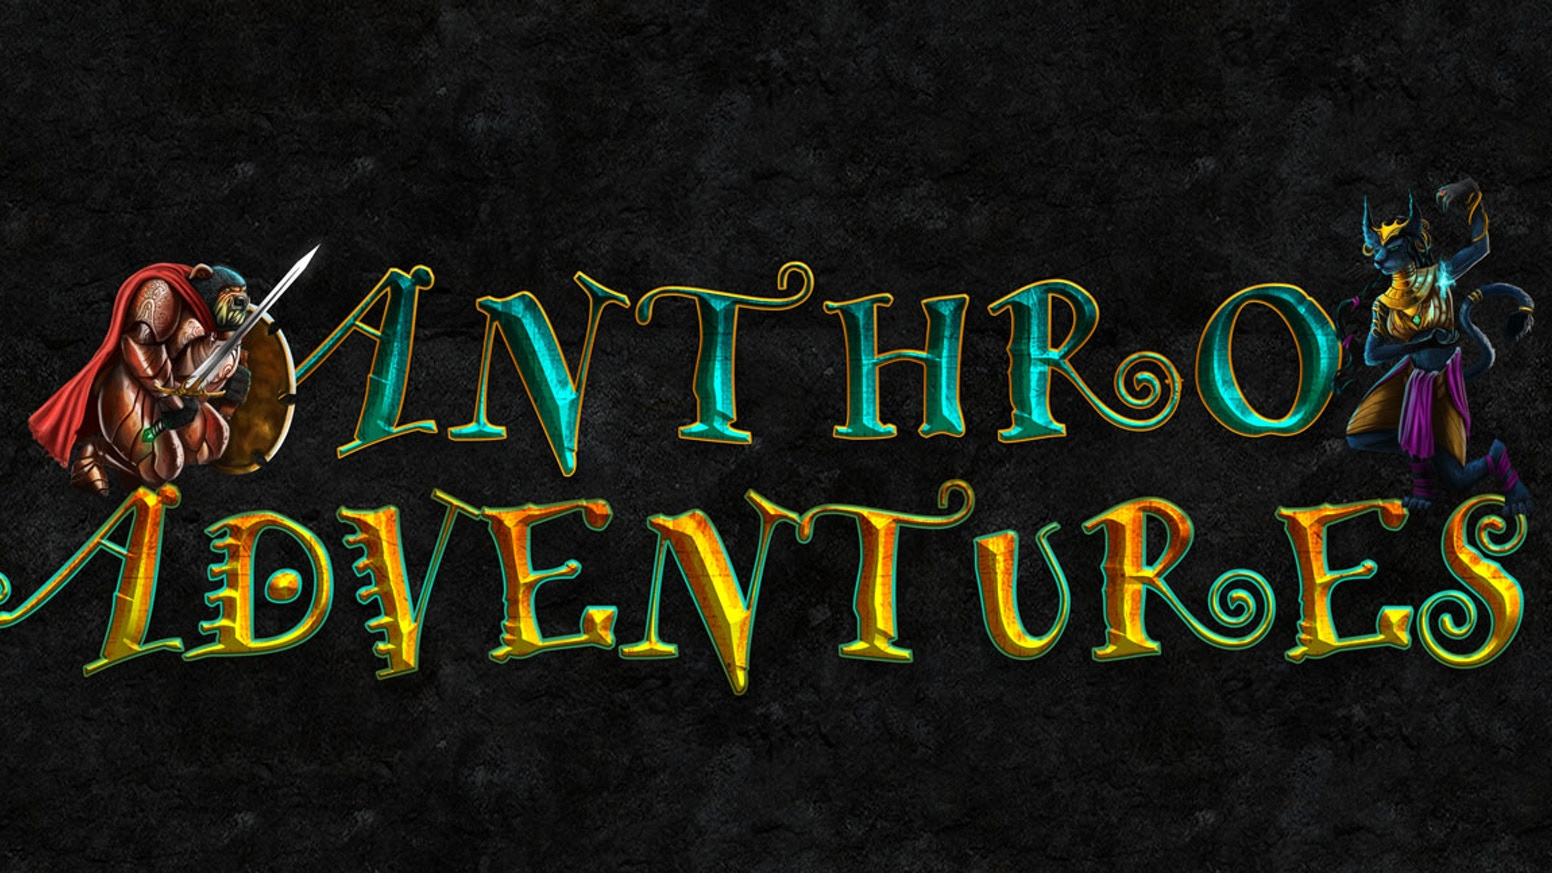 Anthro-Adventures is a Pathfinder compatible world setting designed to introduce younger and new players to the world of tabletop RPGs